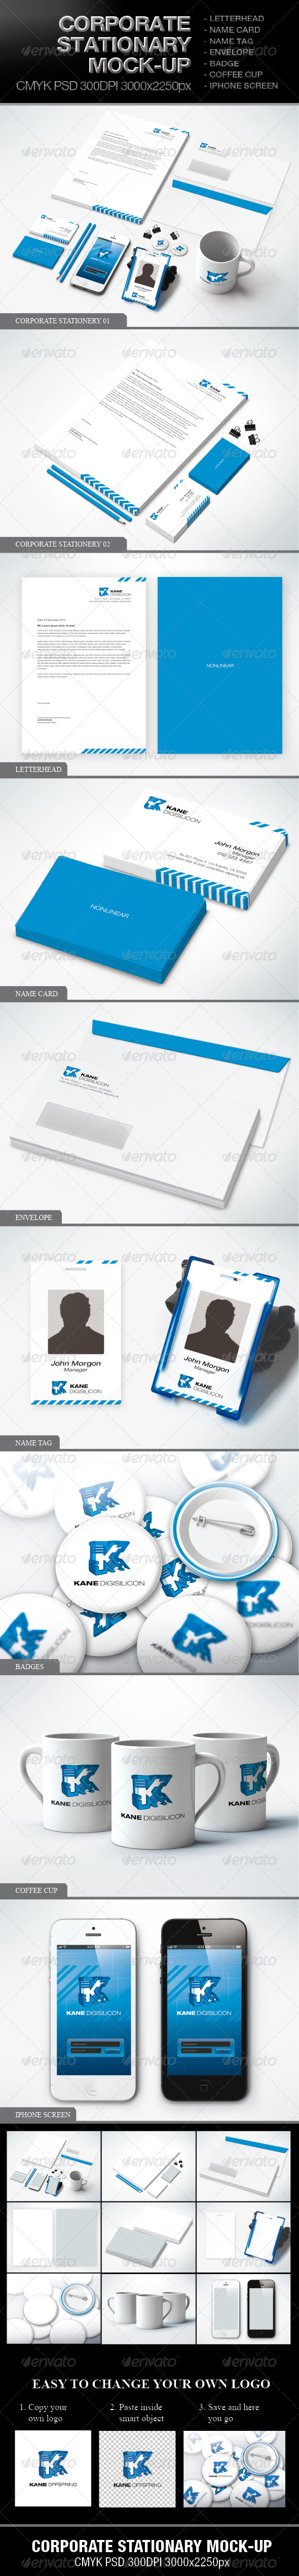 Corporate Stationary Mock-up - Stationery Print